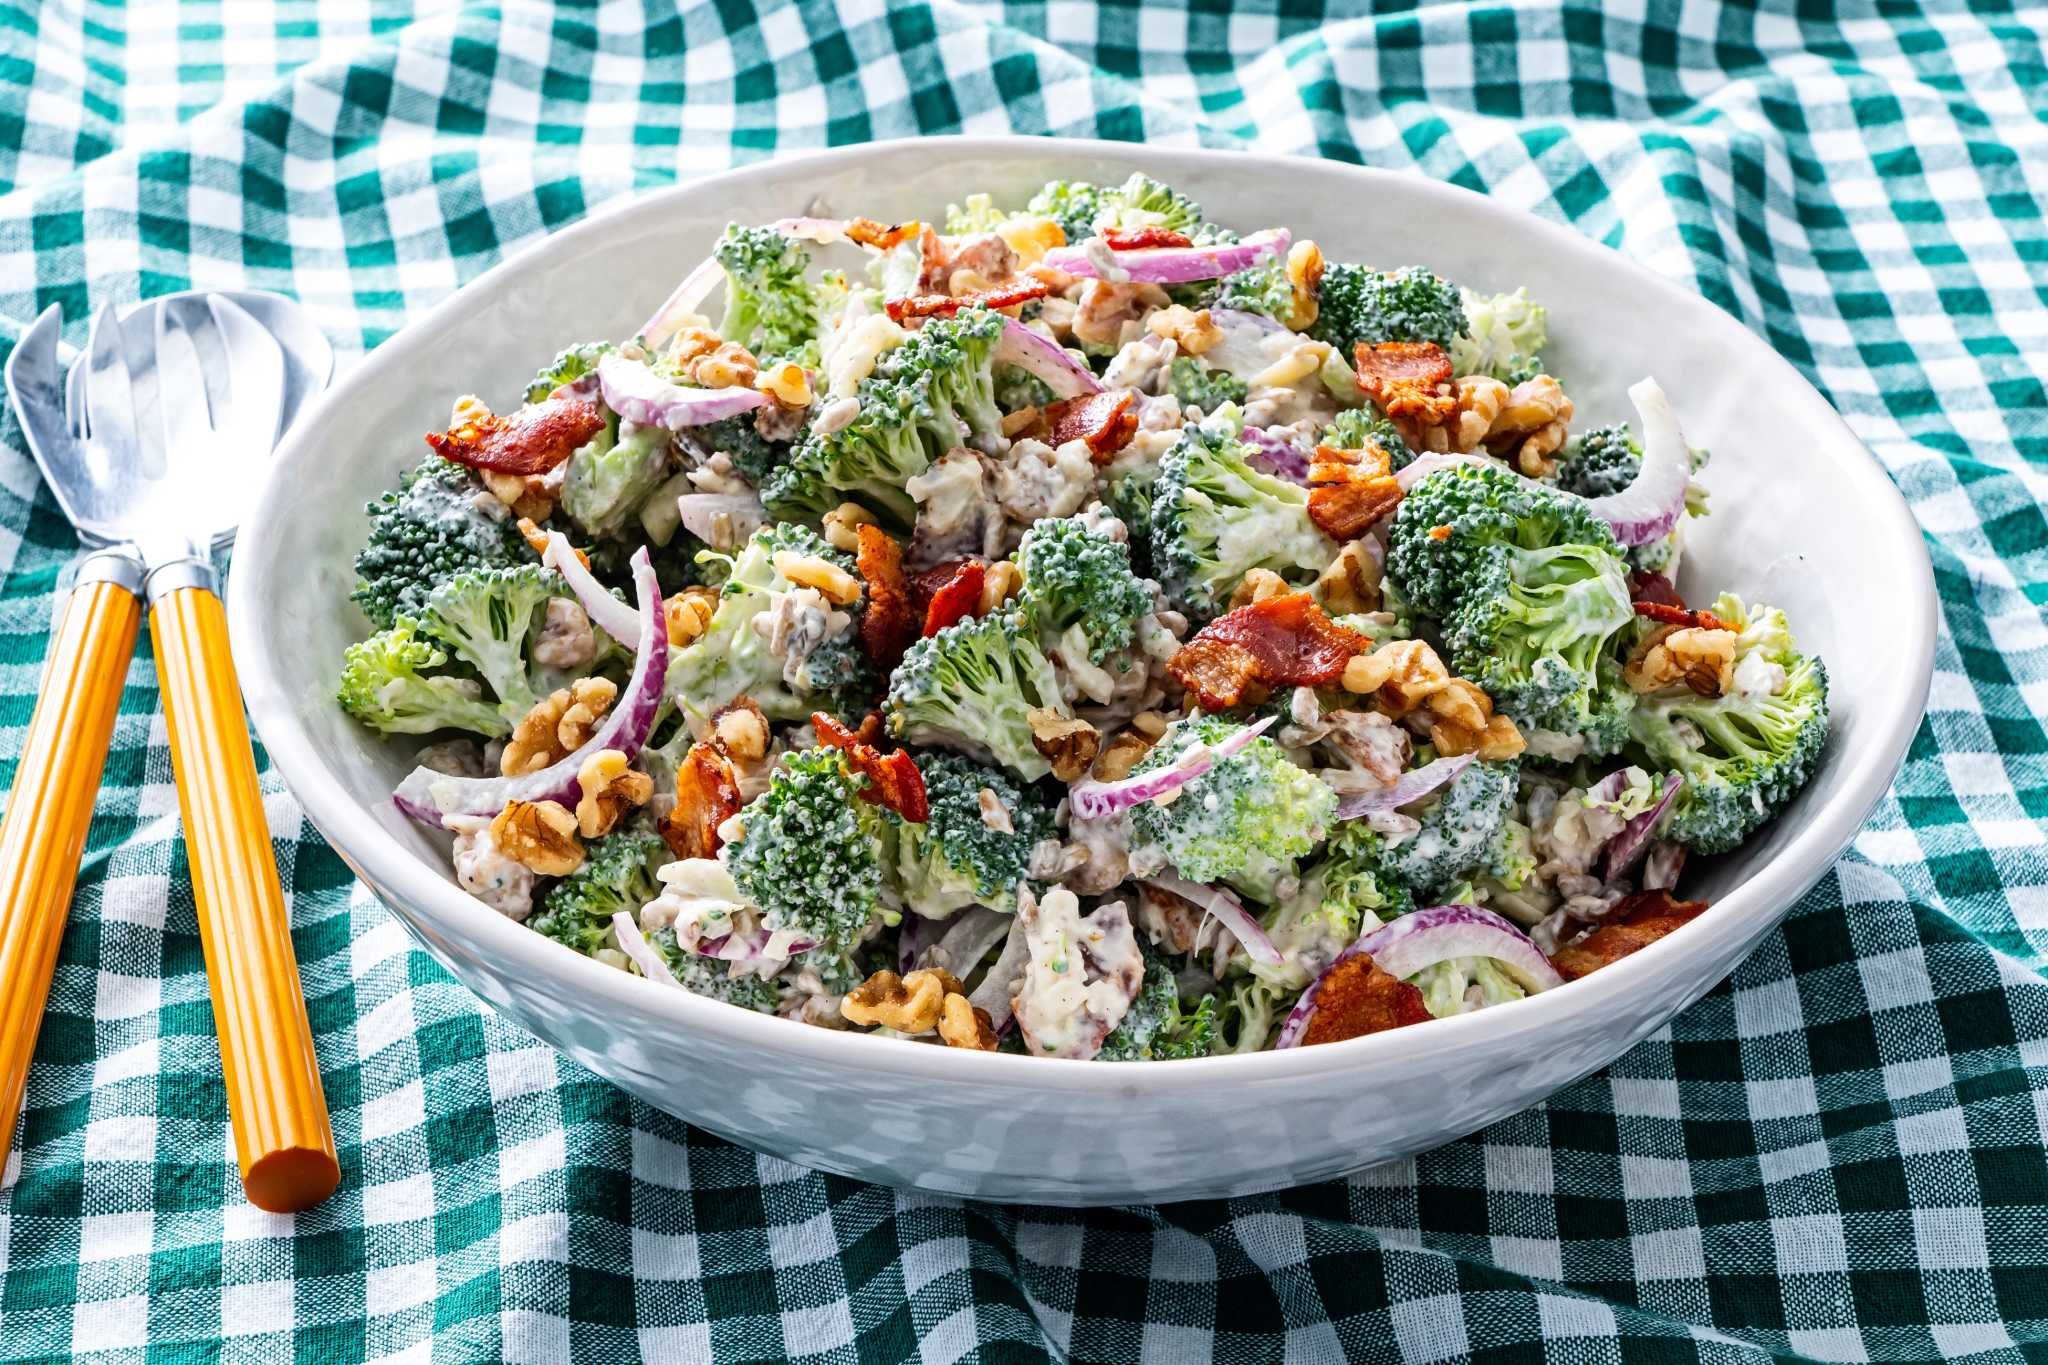 This broccoli and bacon salad is creamy, salty, nutty and made for summer days